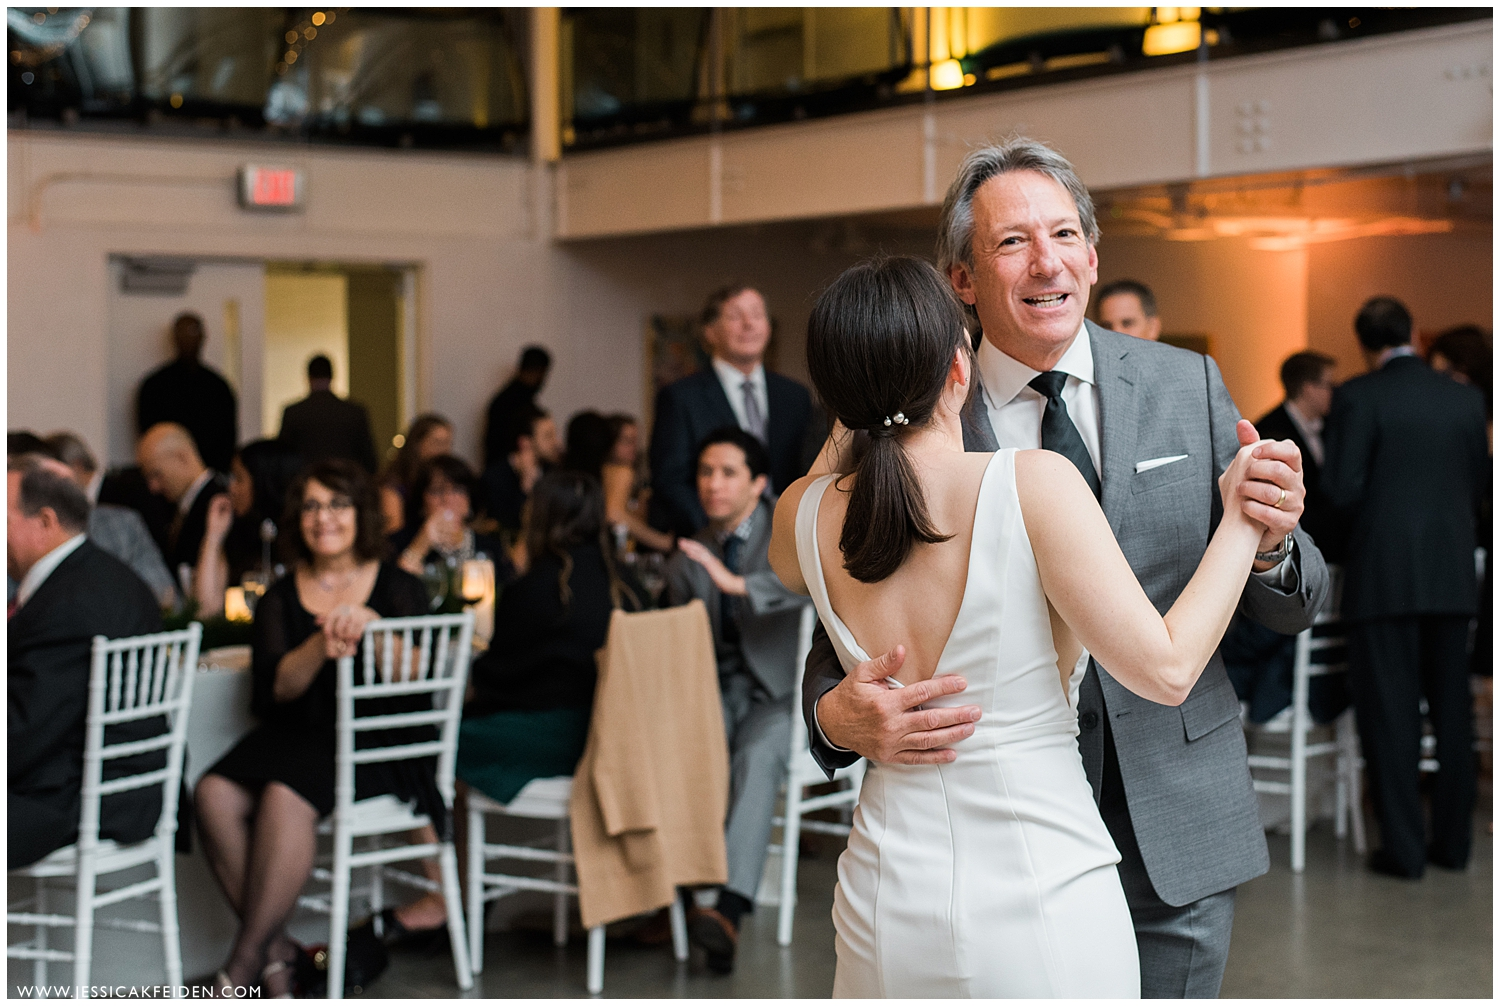 Jessica K Feiden Photography_Artist for Humanity Wedding Boston Photographer_0057.jpg